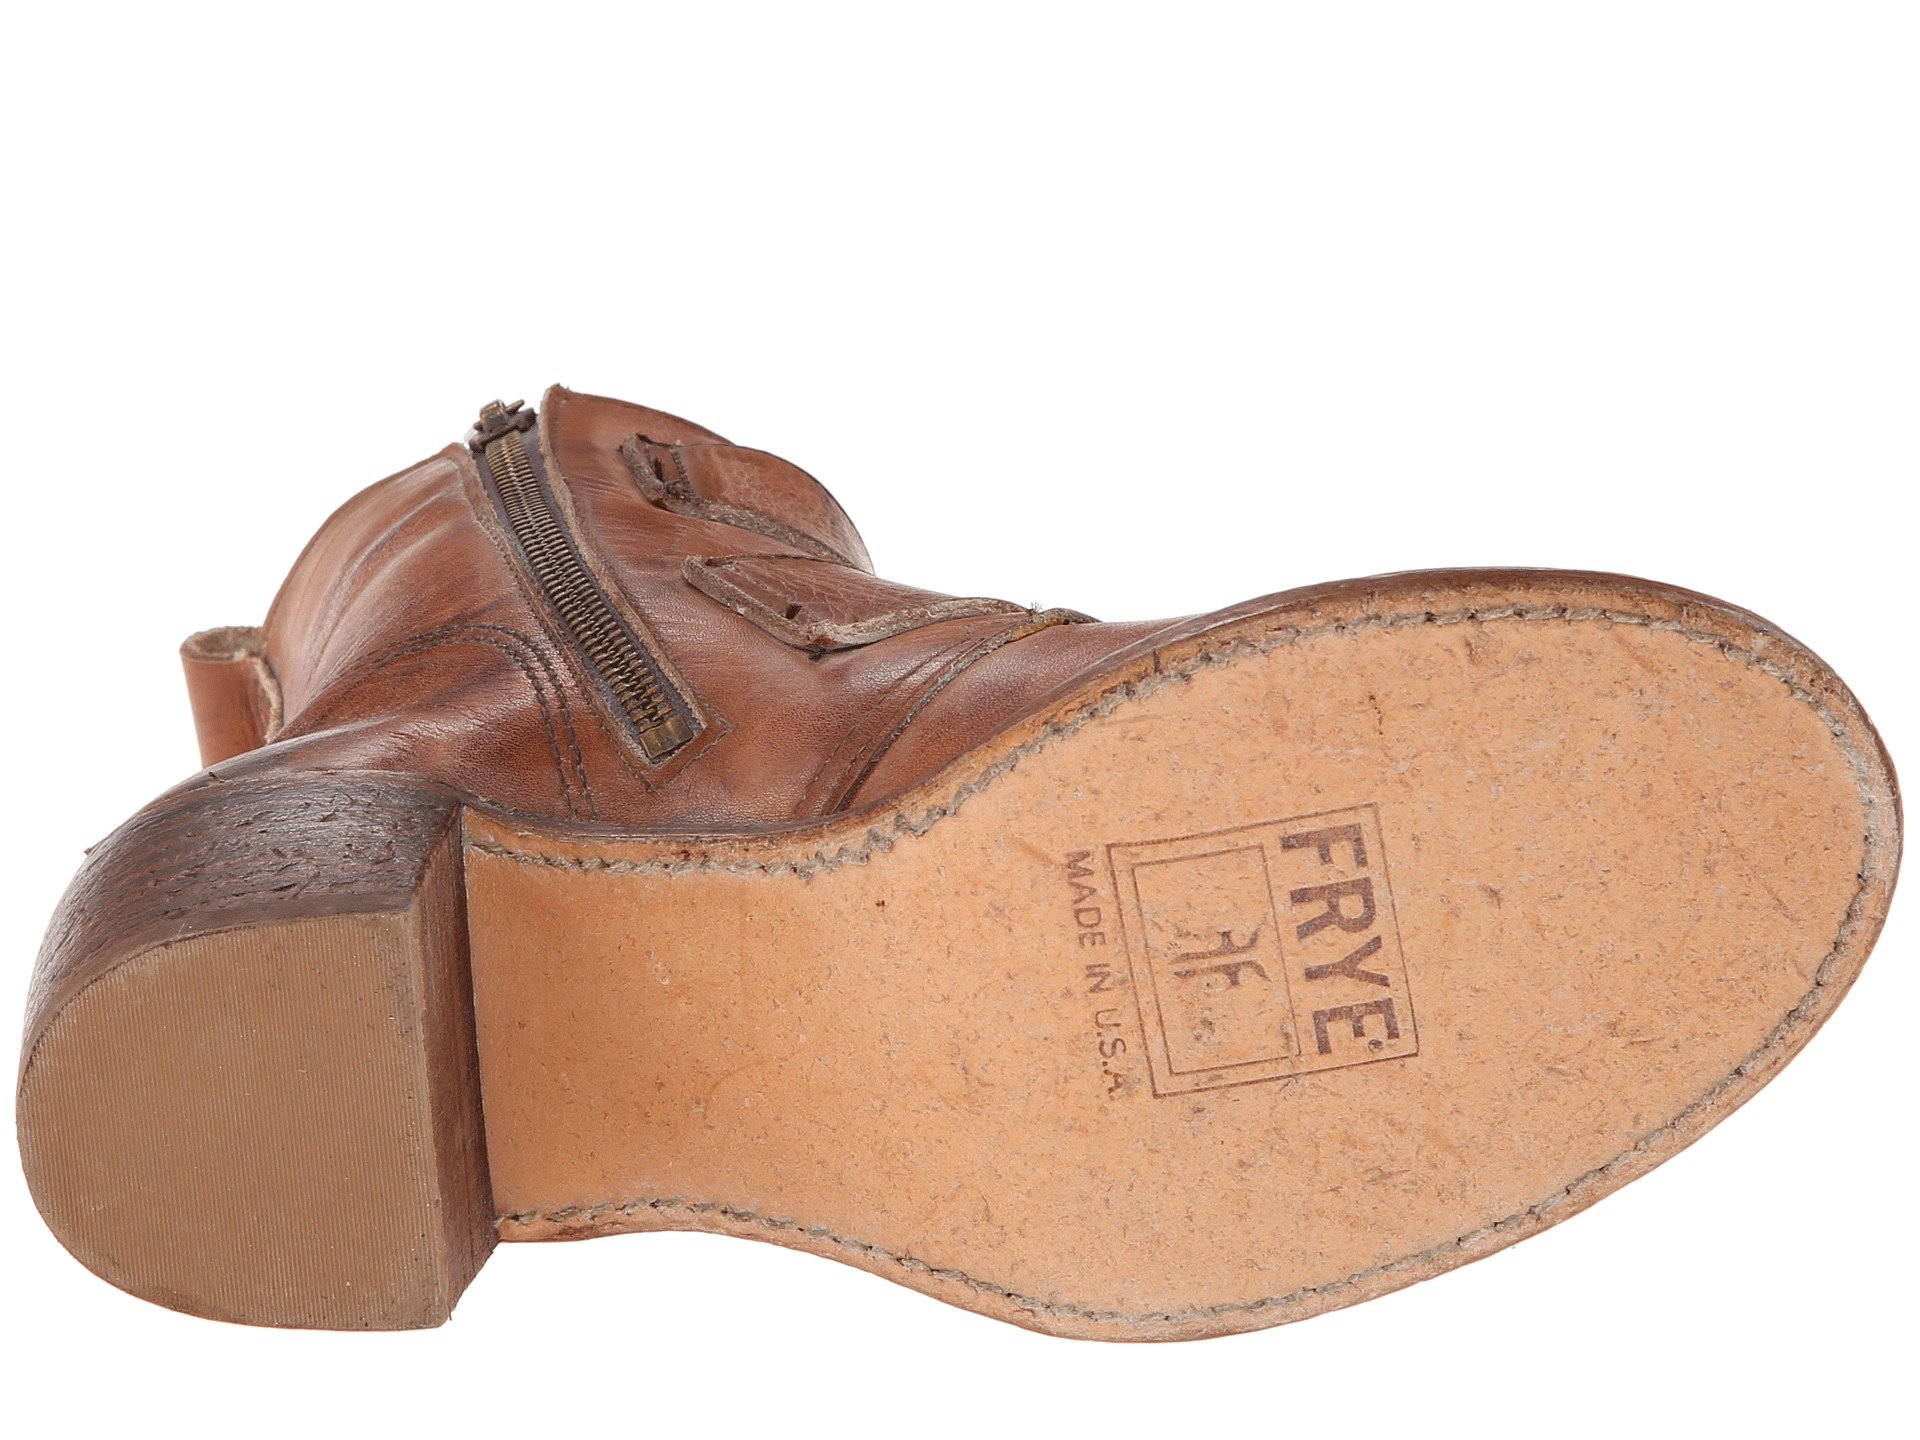 Frye Sabrina Double Buckle At 6pm